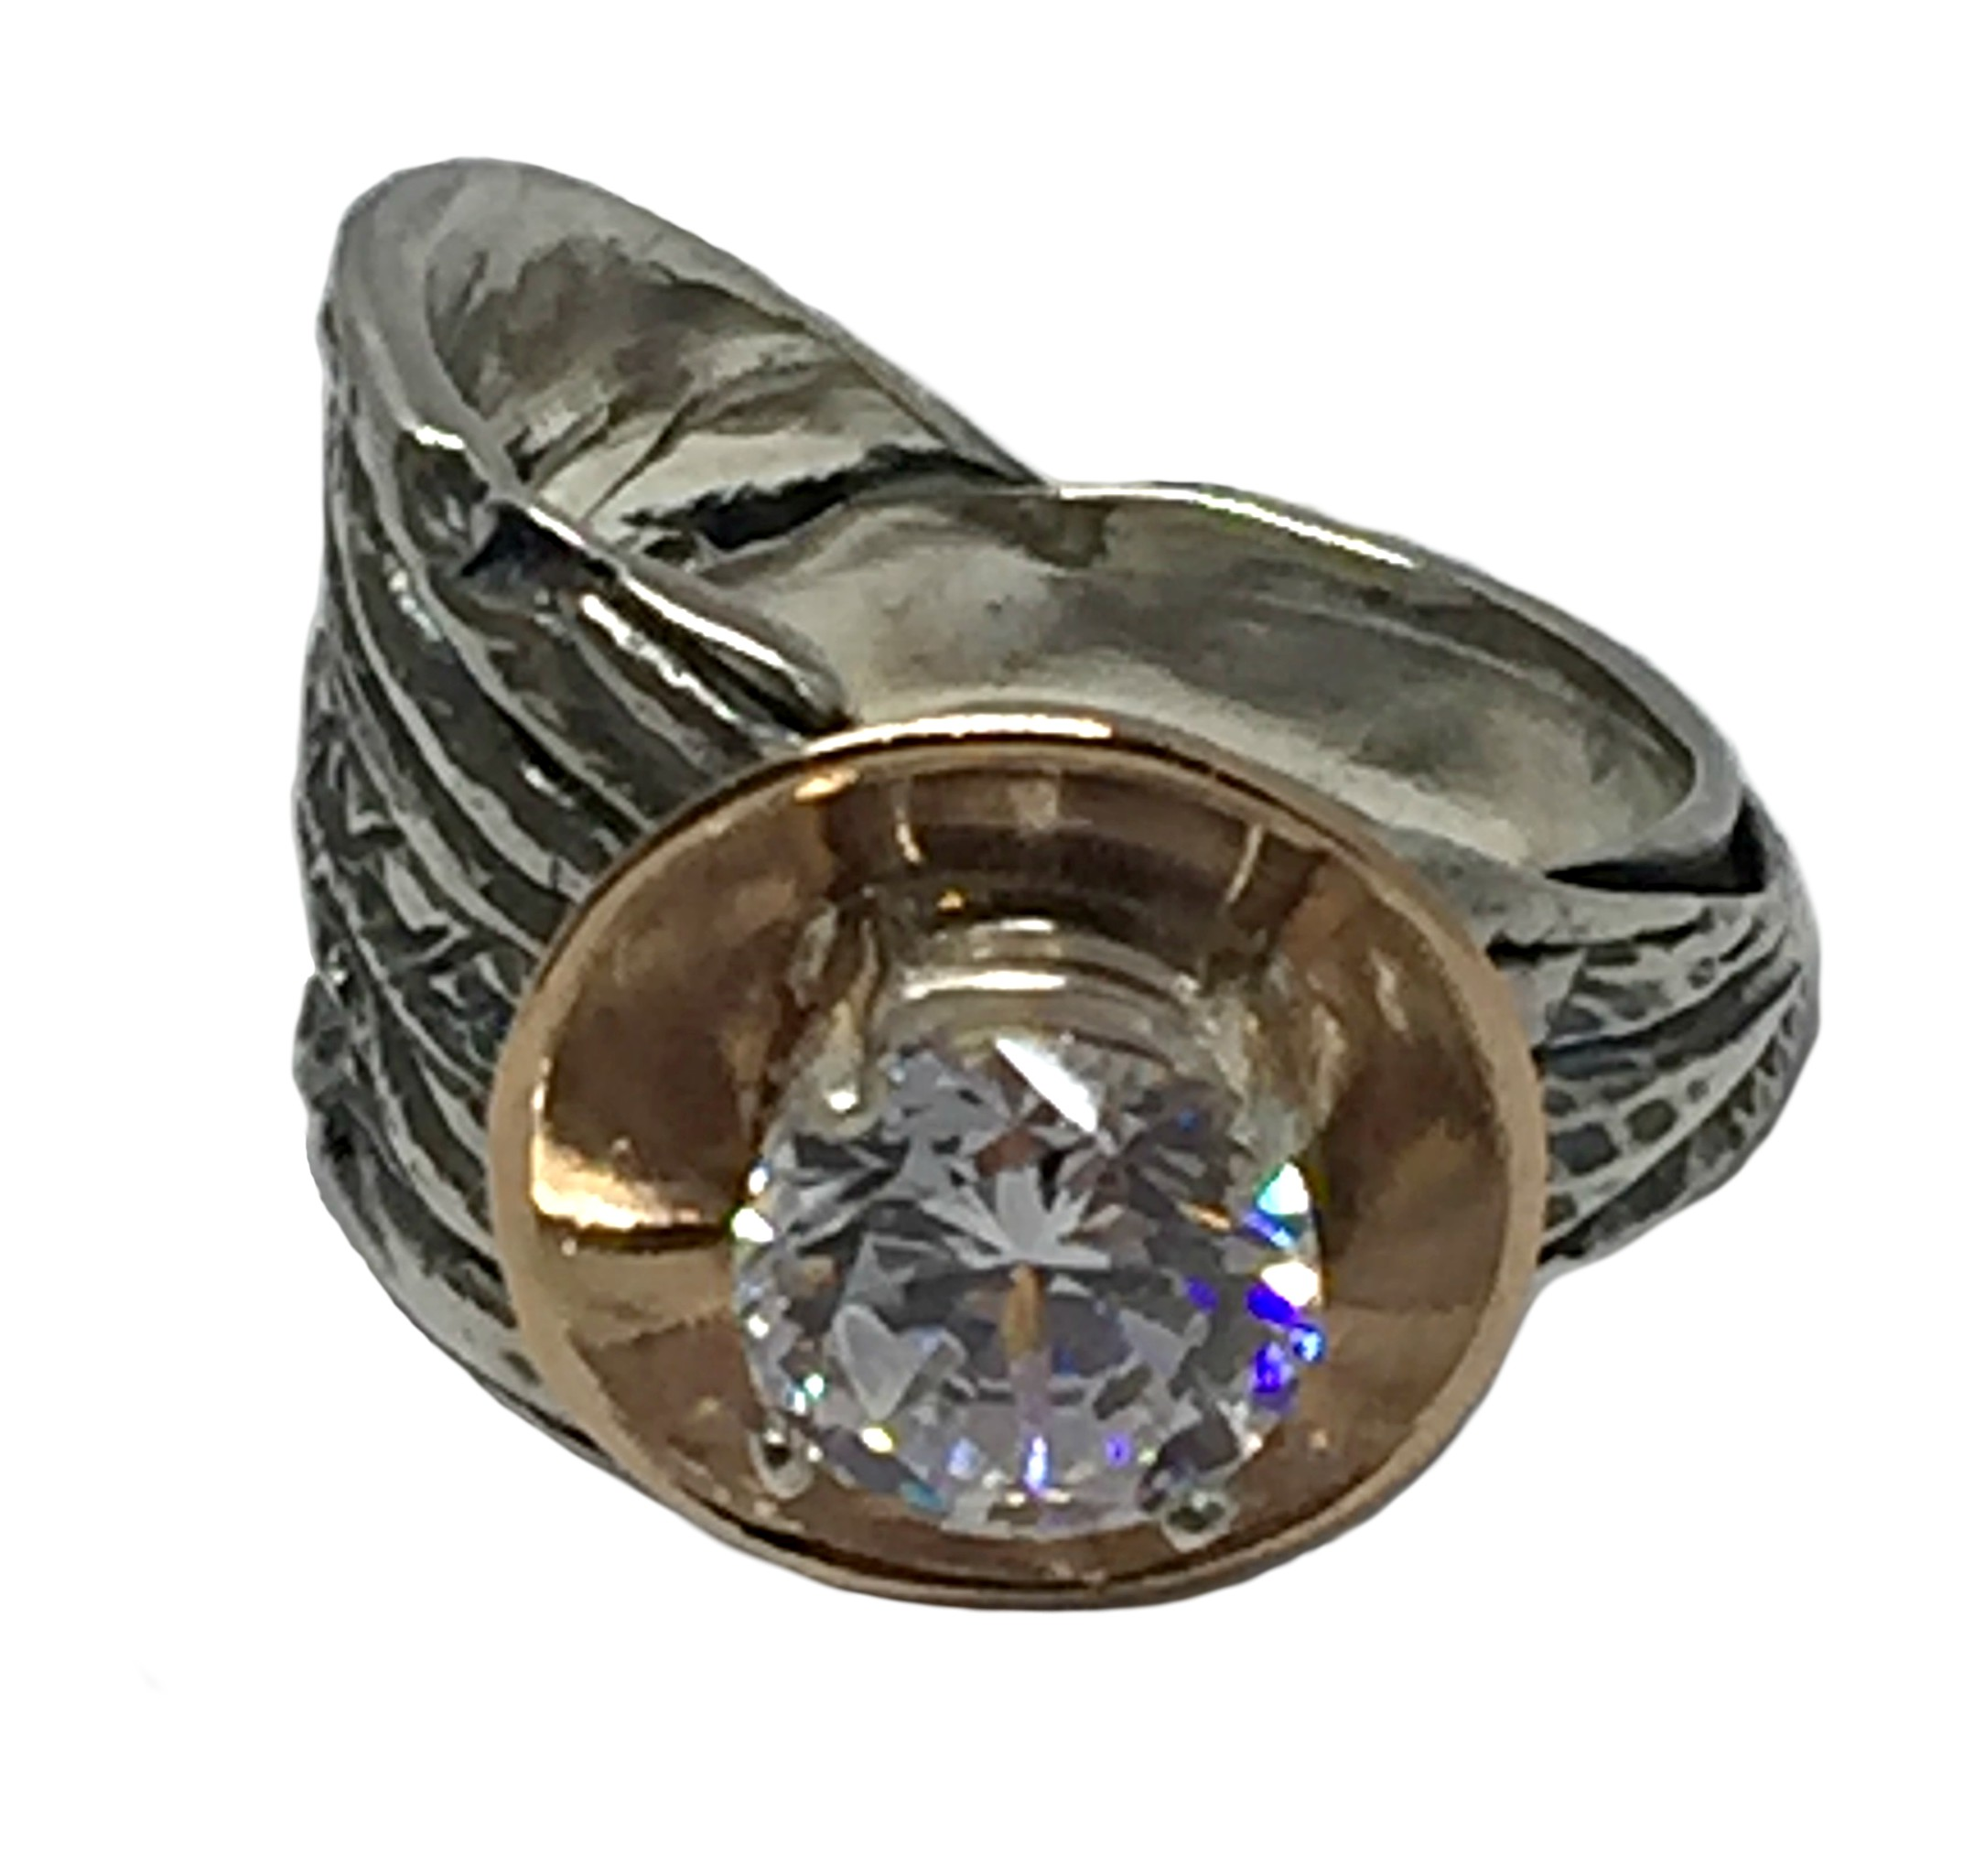 Sterling Silver, Bronze, and CZ Karyn Chopik Ring | Effusion Art Gallery + Cast Glass Studio, Invermere BC